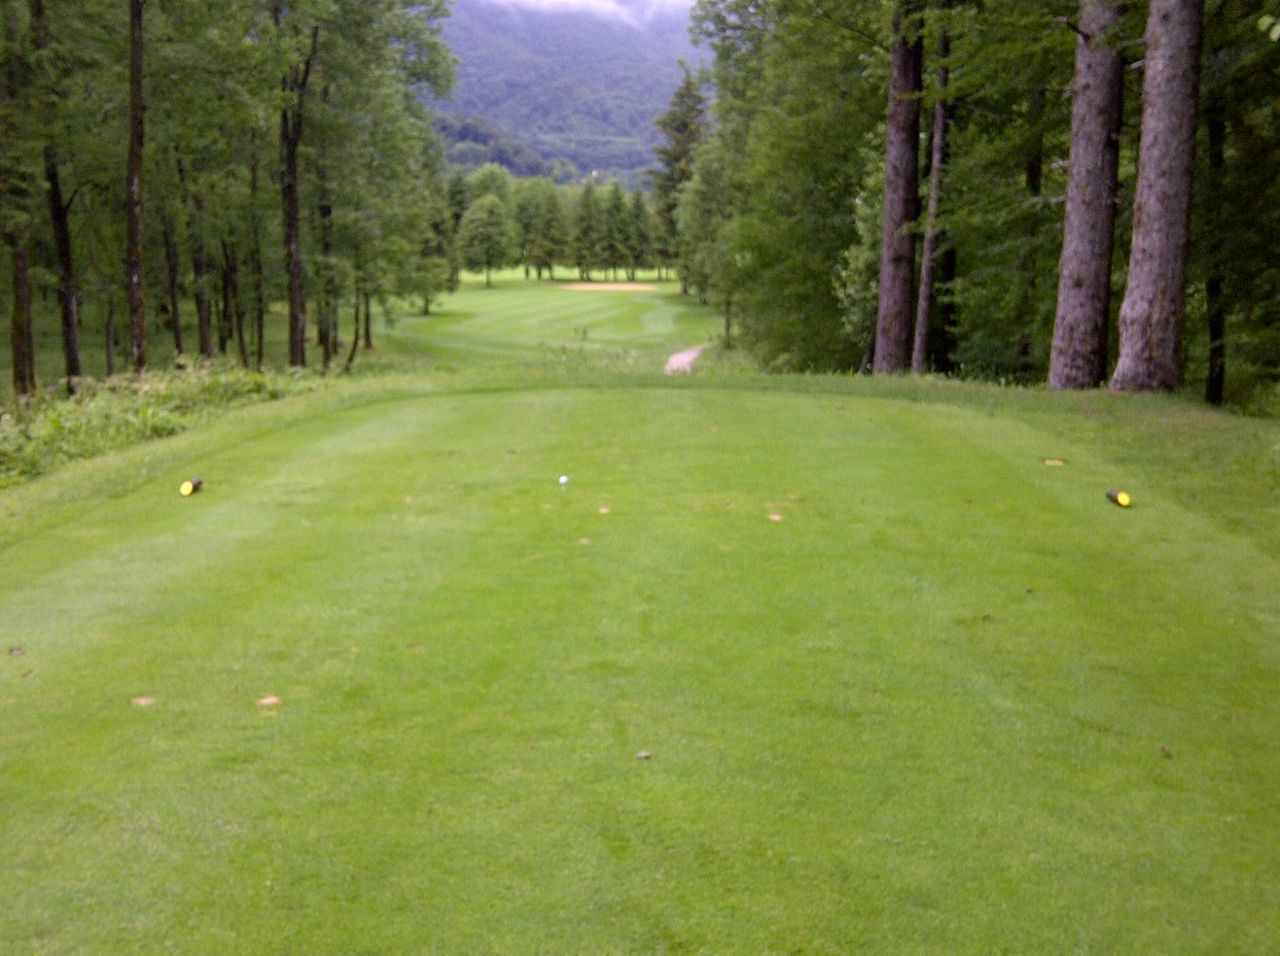 golf course, golf, tree, green - golf course, grass, green color, nature, scenics, no people, beauty in nature, outdoors, sport, day